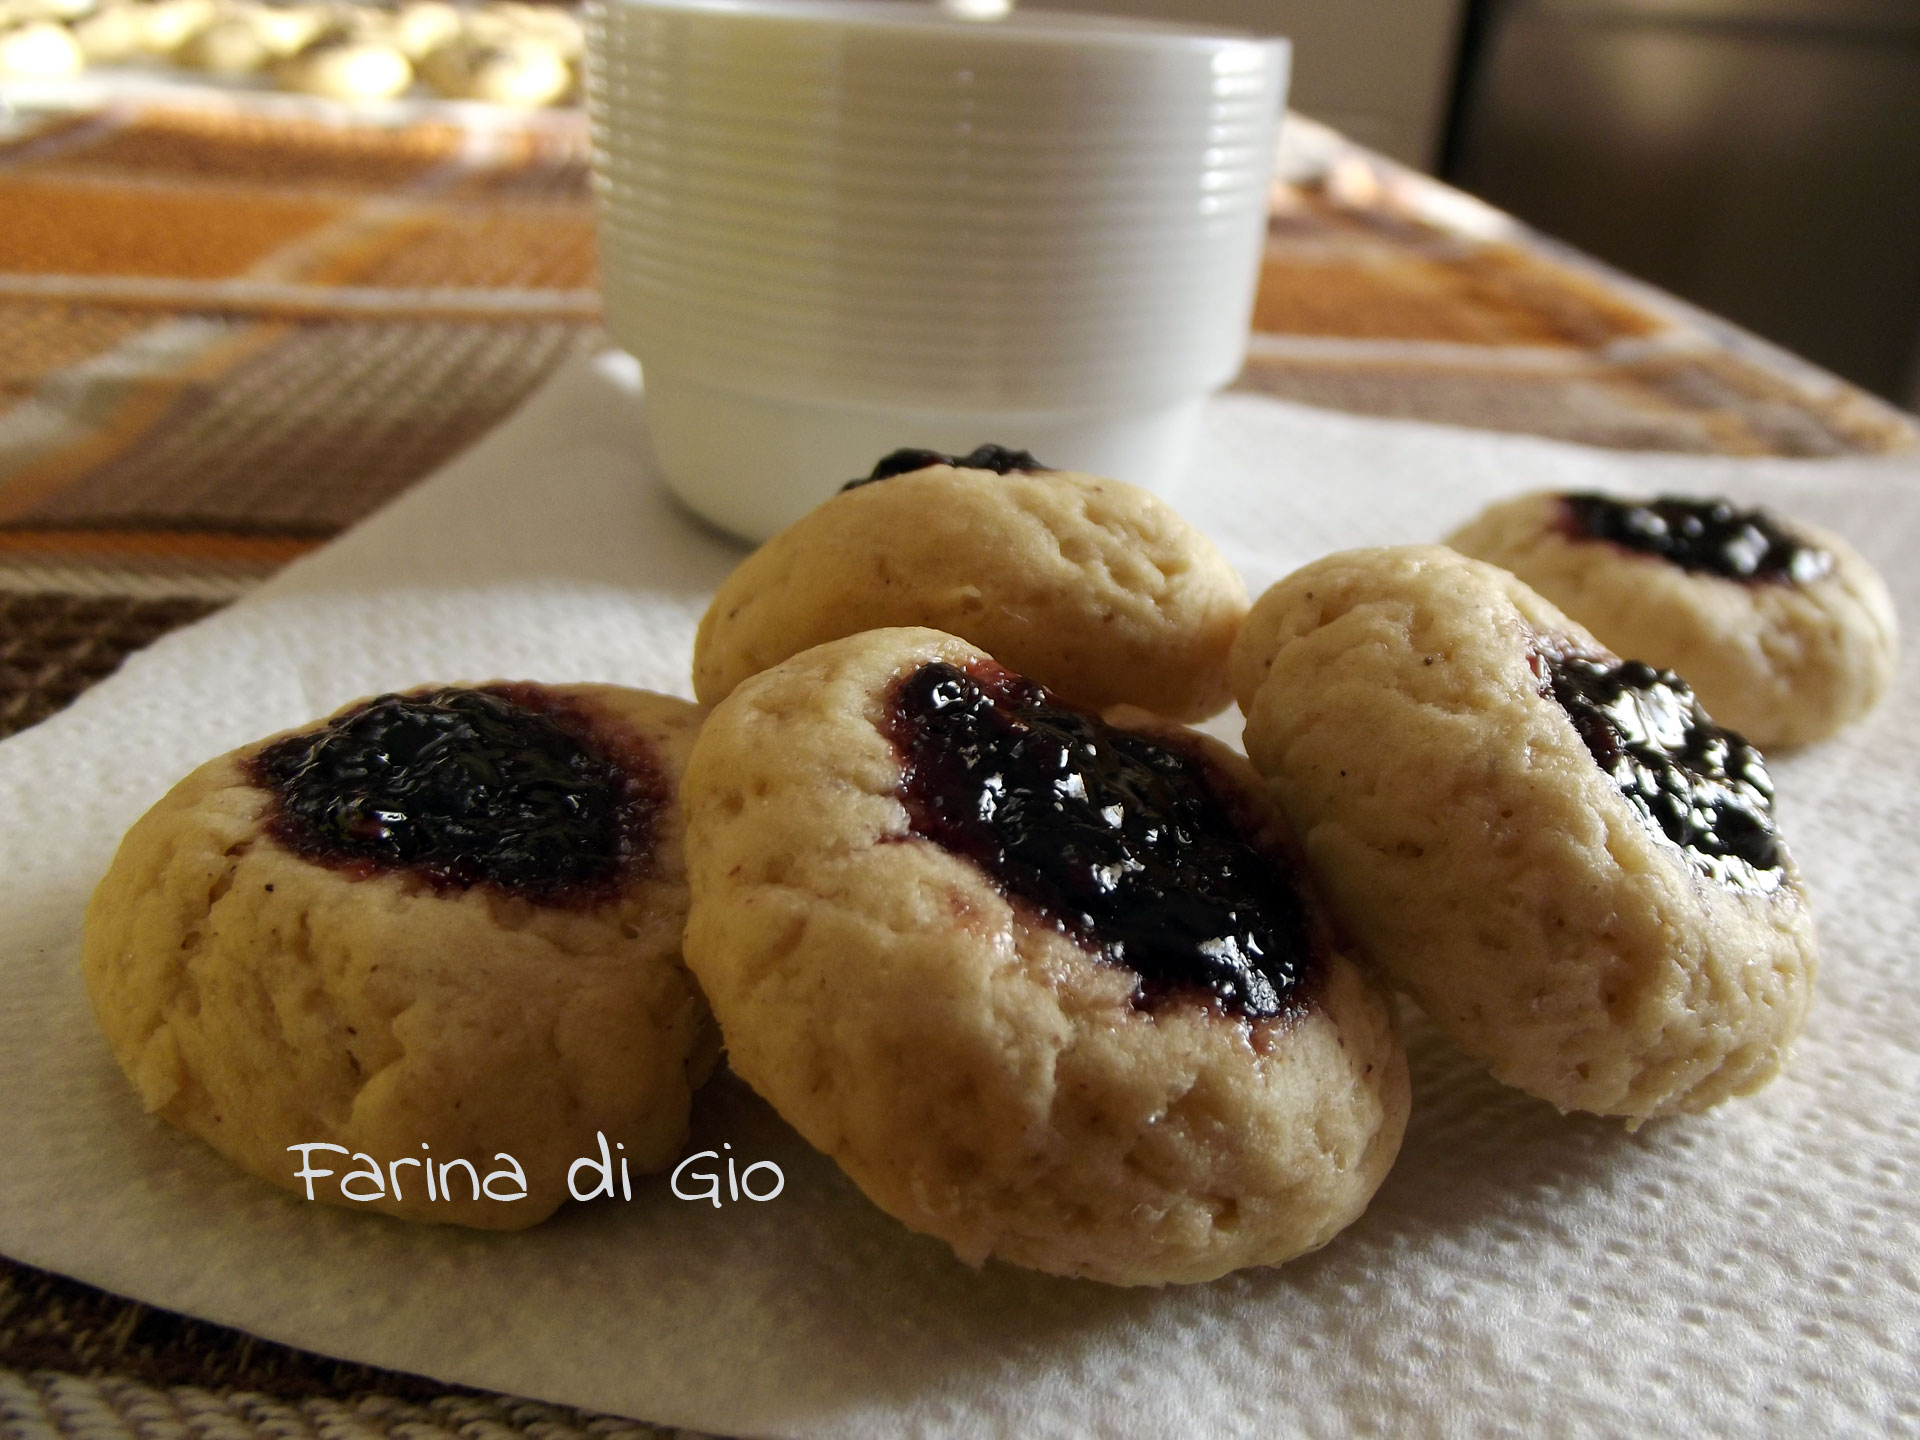 thumbprint cookies di farro